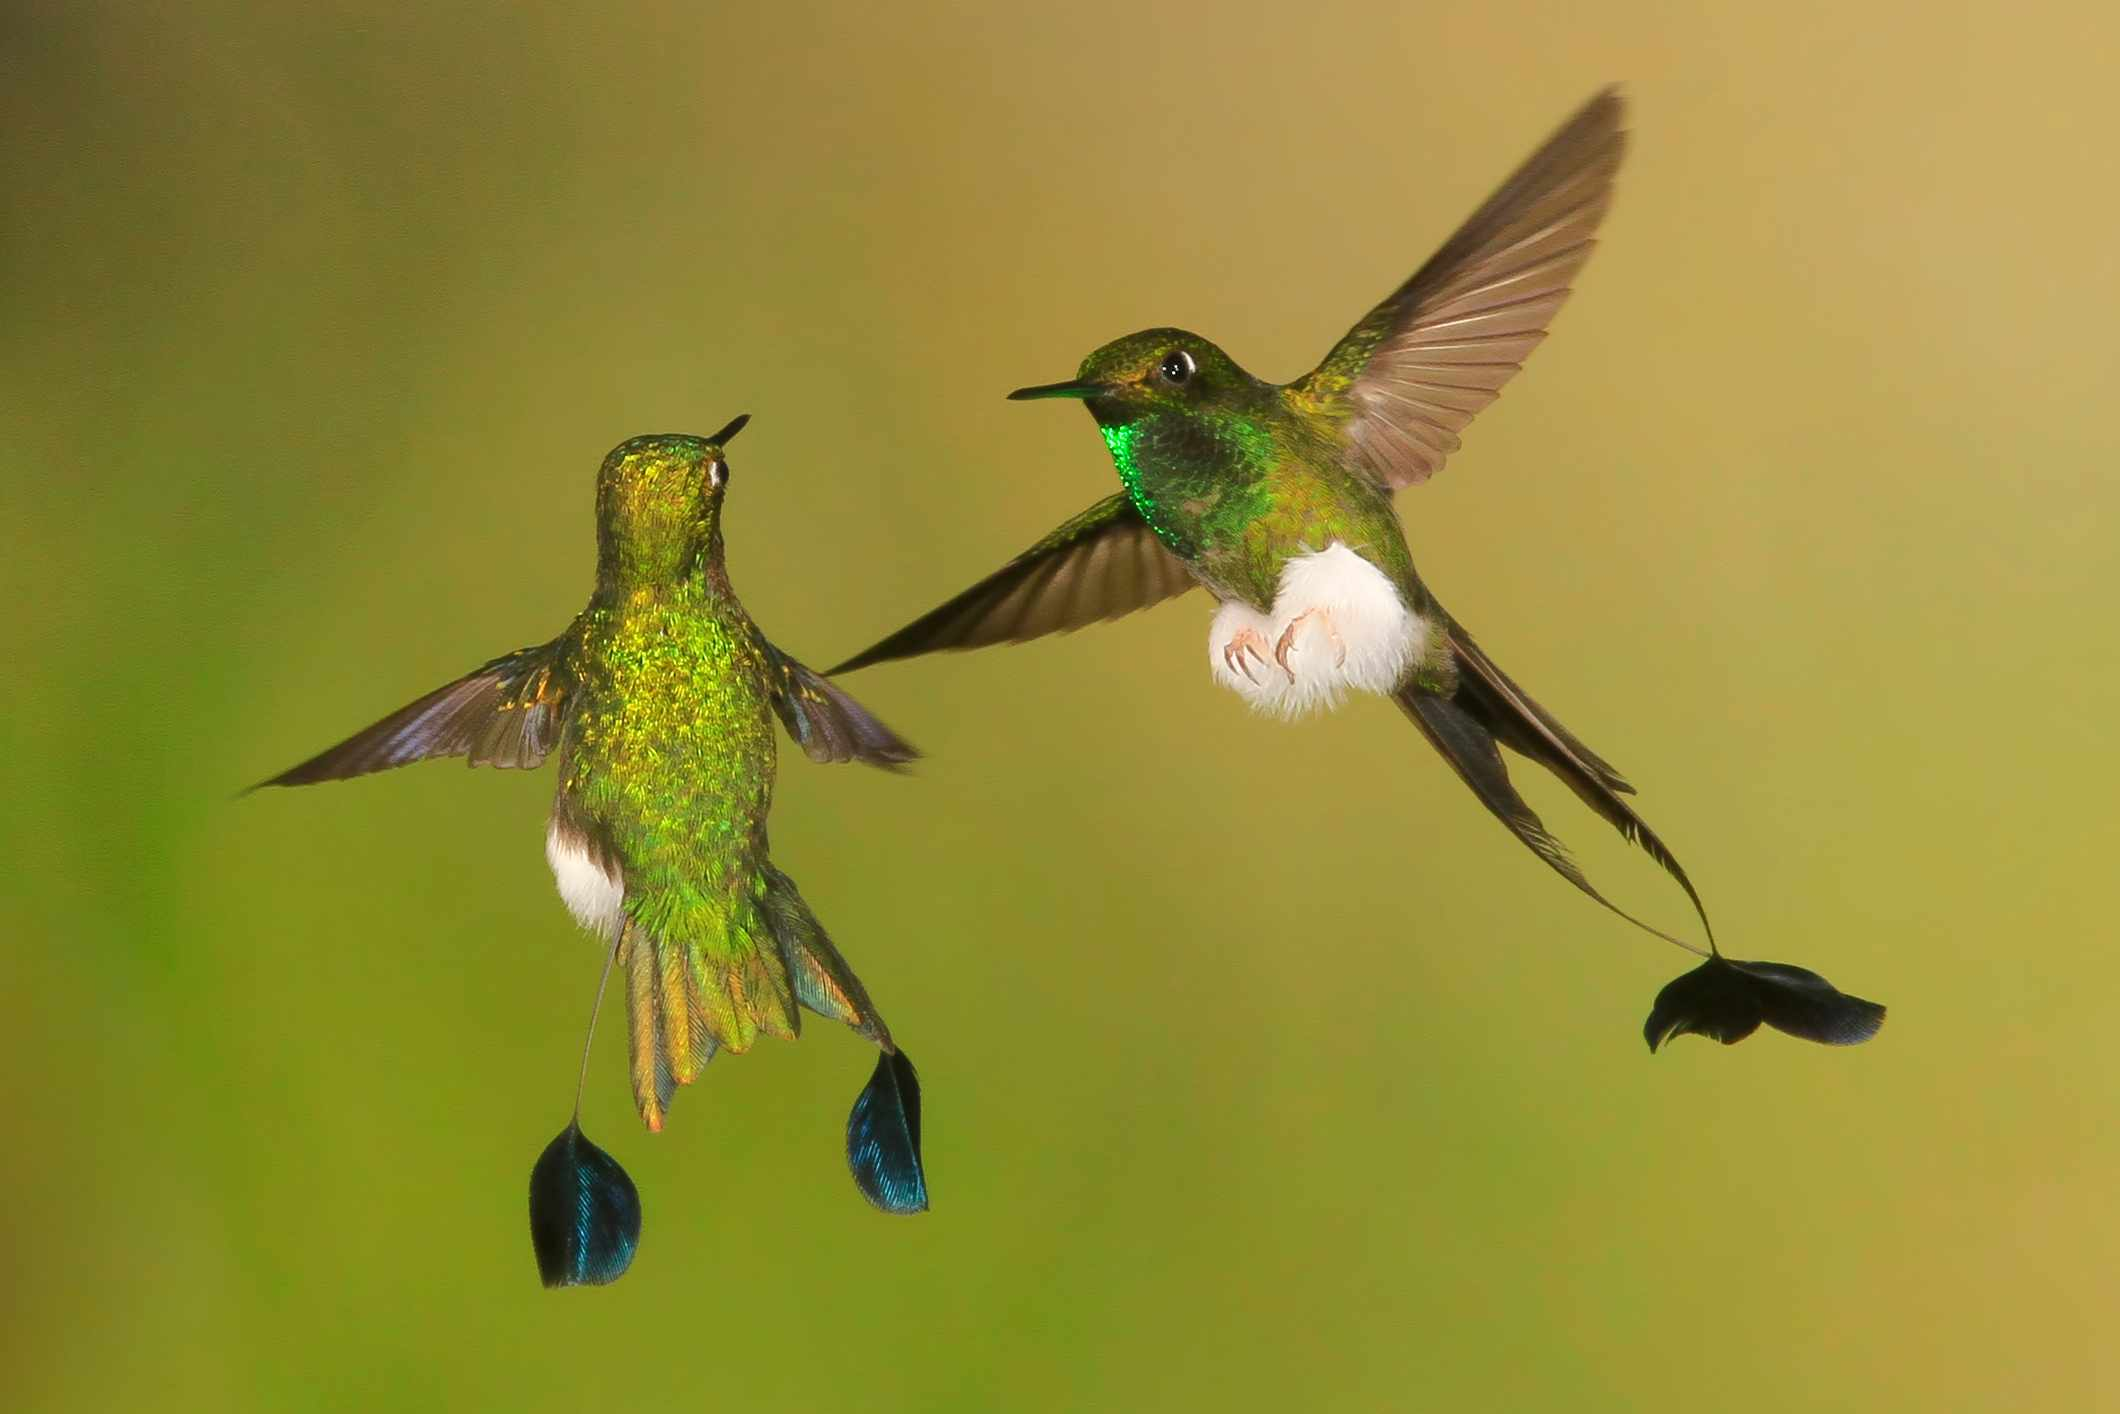 Pair of booted racket-tail hummingbirds (Ocreatus underwoodii) in territorial display flight. © Mark J. Thomas/Getty